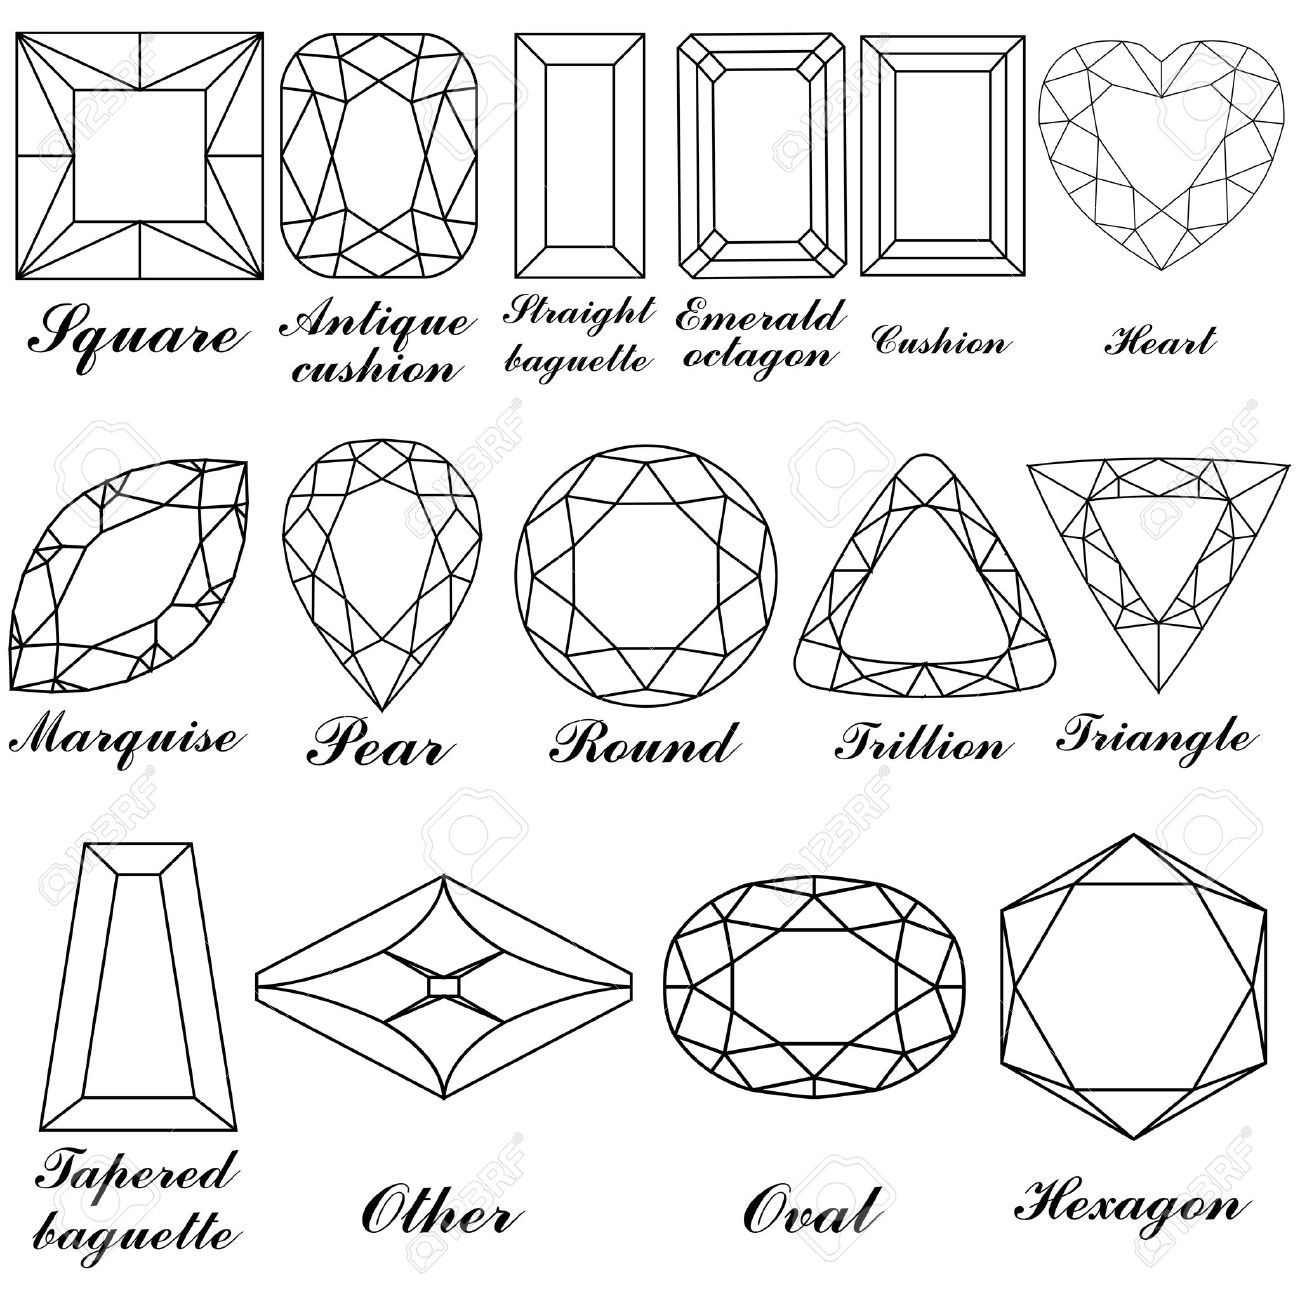 jpg faceted jewel line drawing